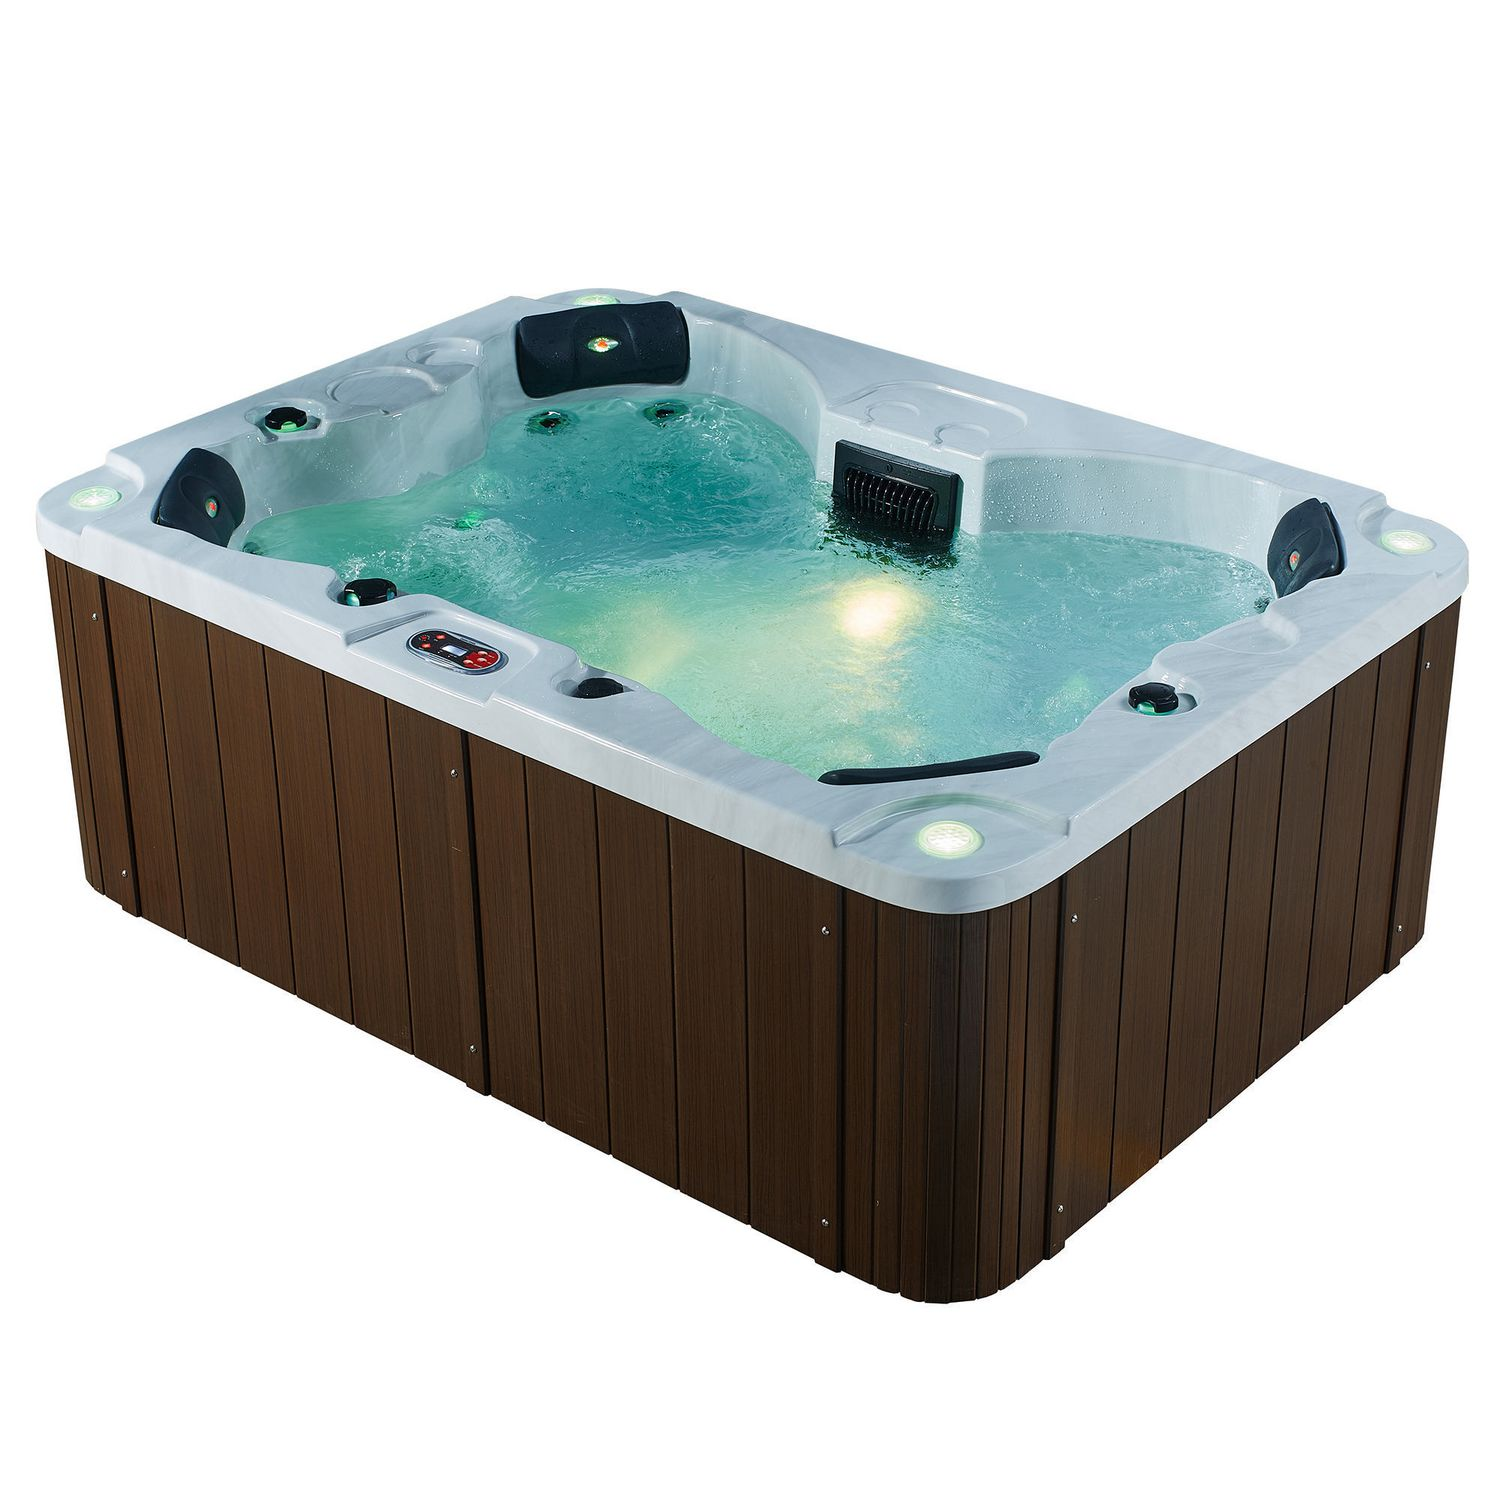 costco and buying furniture caldera comfy tub spa dining spas at ideas most with appealing hot stairs gazebo gray a patio tubs for outdoor under design evolution new reviews expensive stone